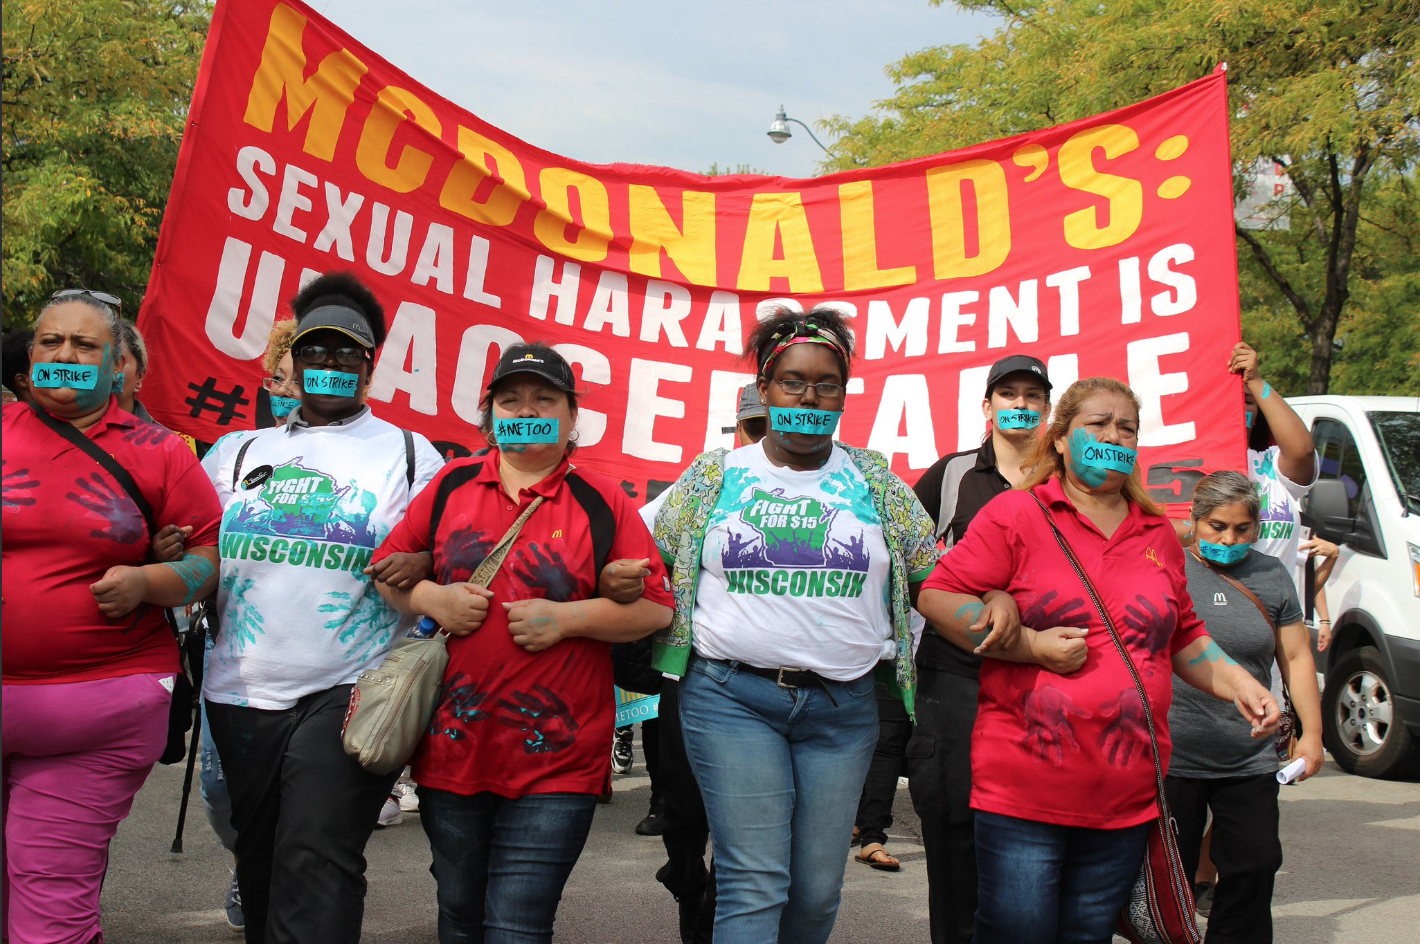 #MeTooMcDonalds: Fast-Food Workers Just Made History with a Nationwide Strike Against Sexual Harassment - Ms. Magazine Blog